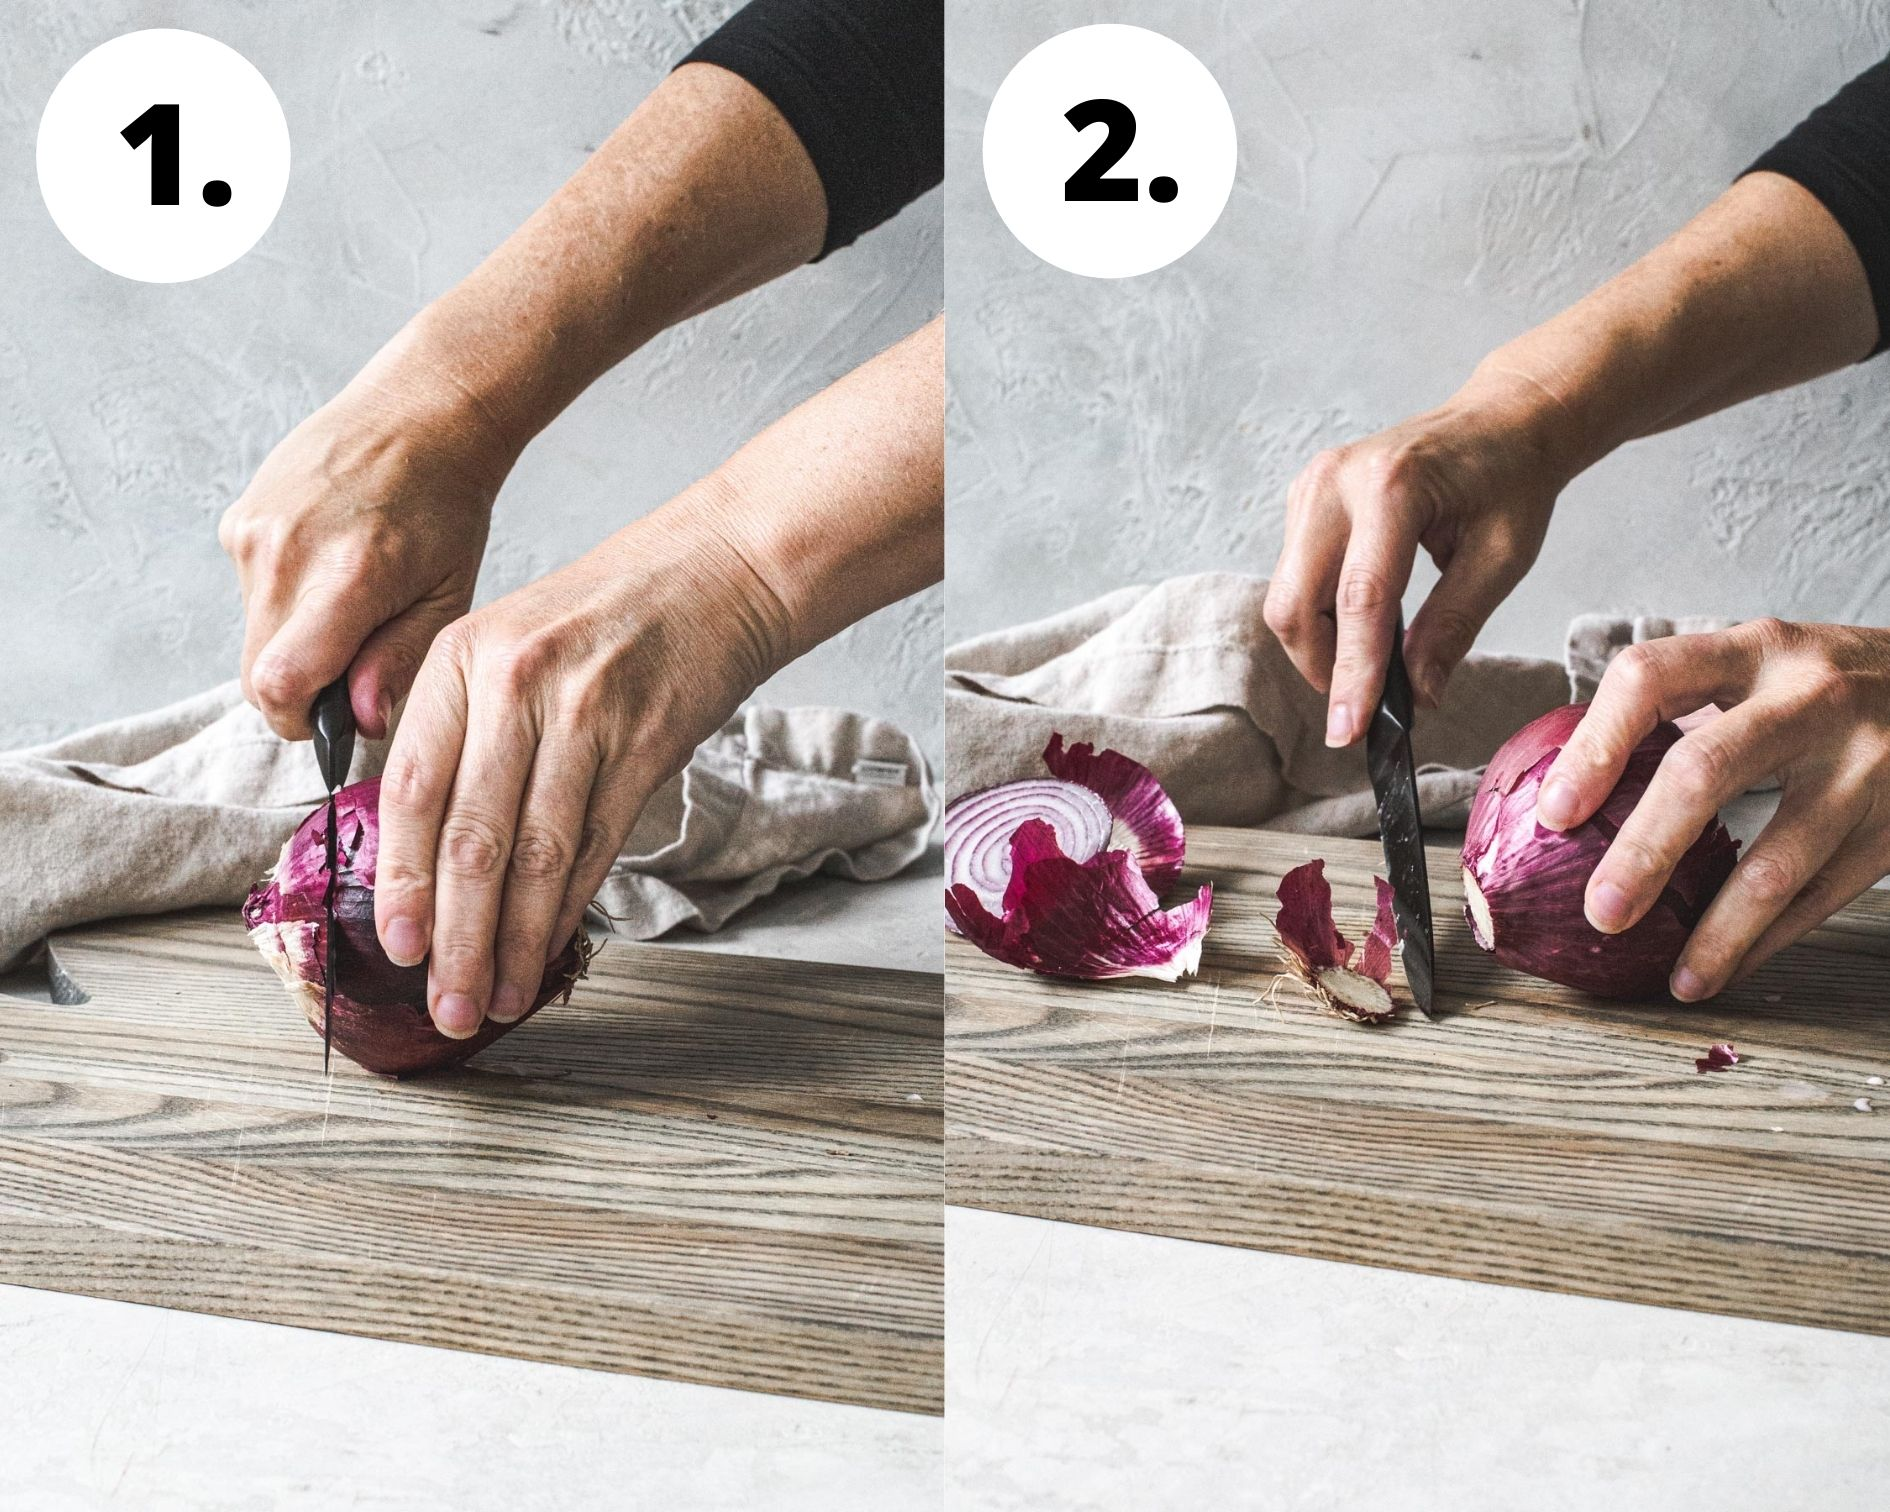 Process steps 1 and 2 for cutting an onion crosswise.